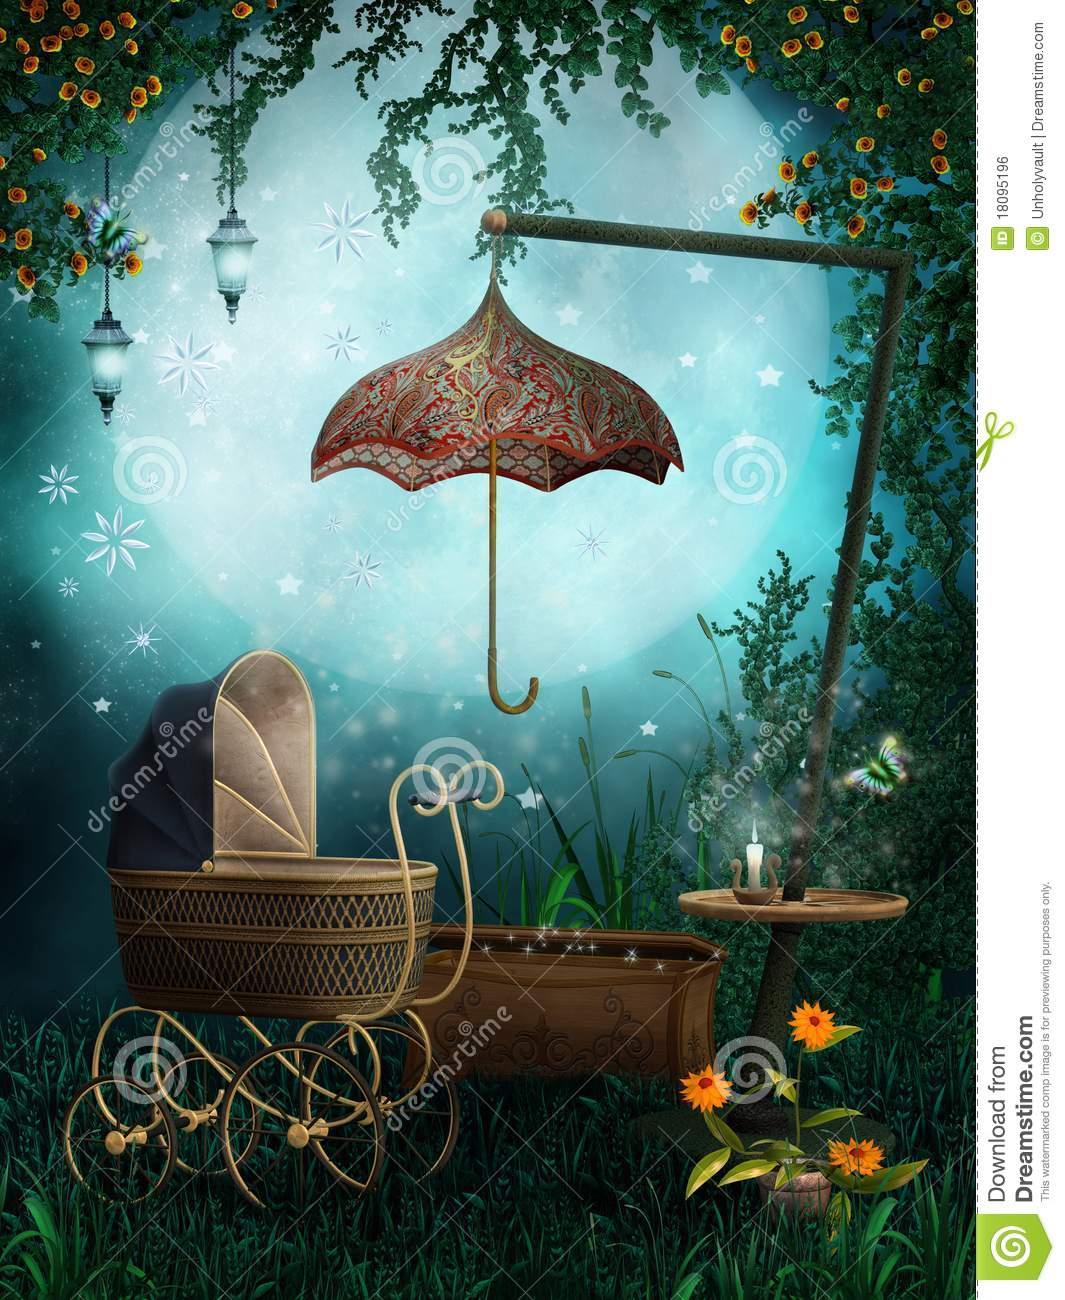 Enchanted Garden With A Pram Royalty Free Stock Image